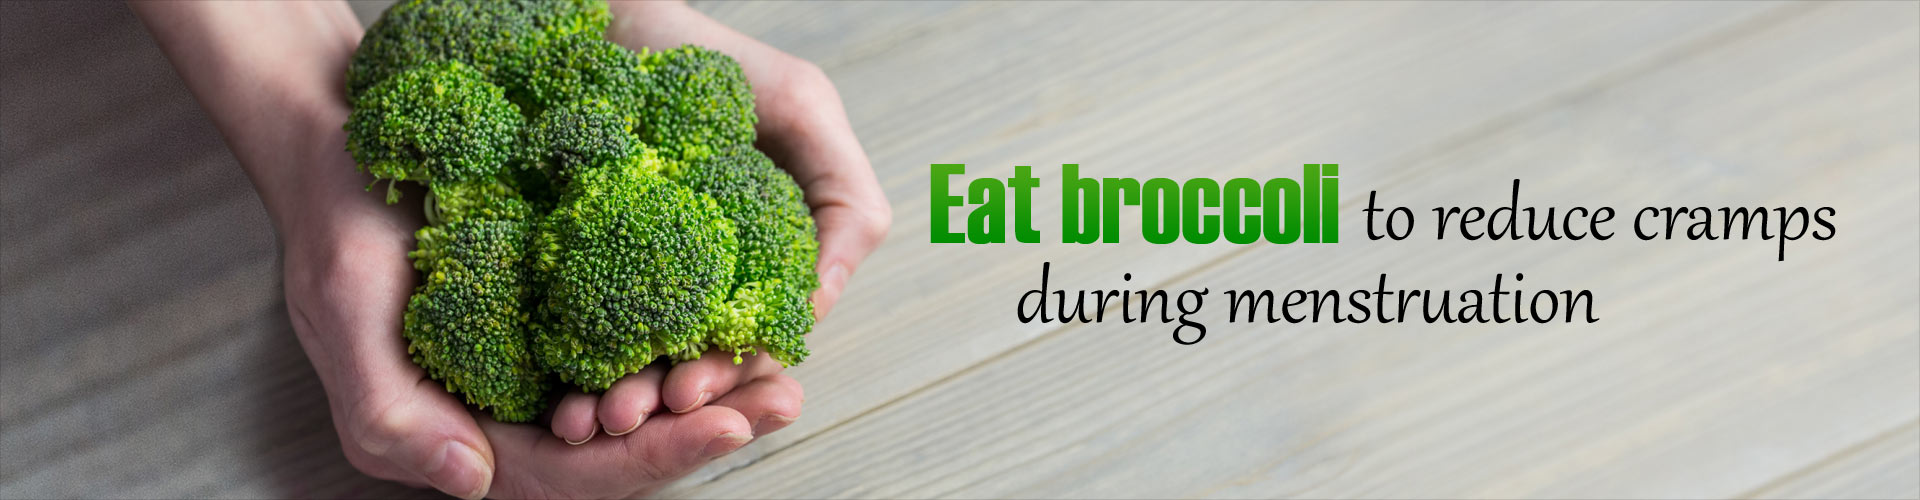 Eat broccoli to reduce cramps during menstruation